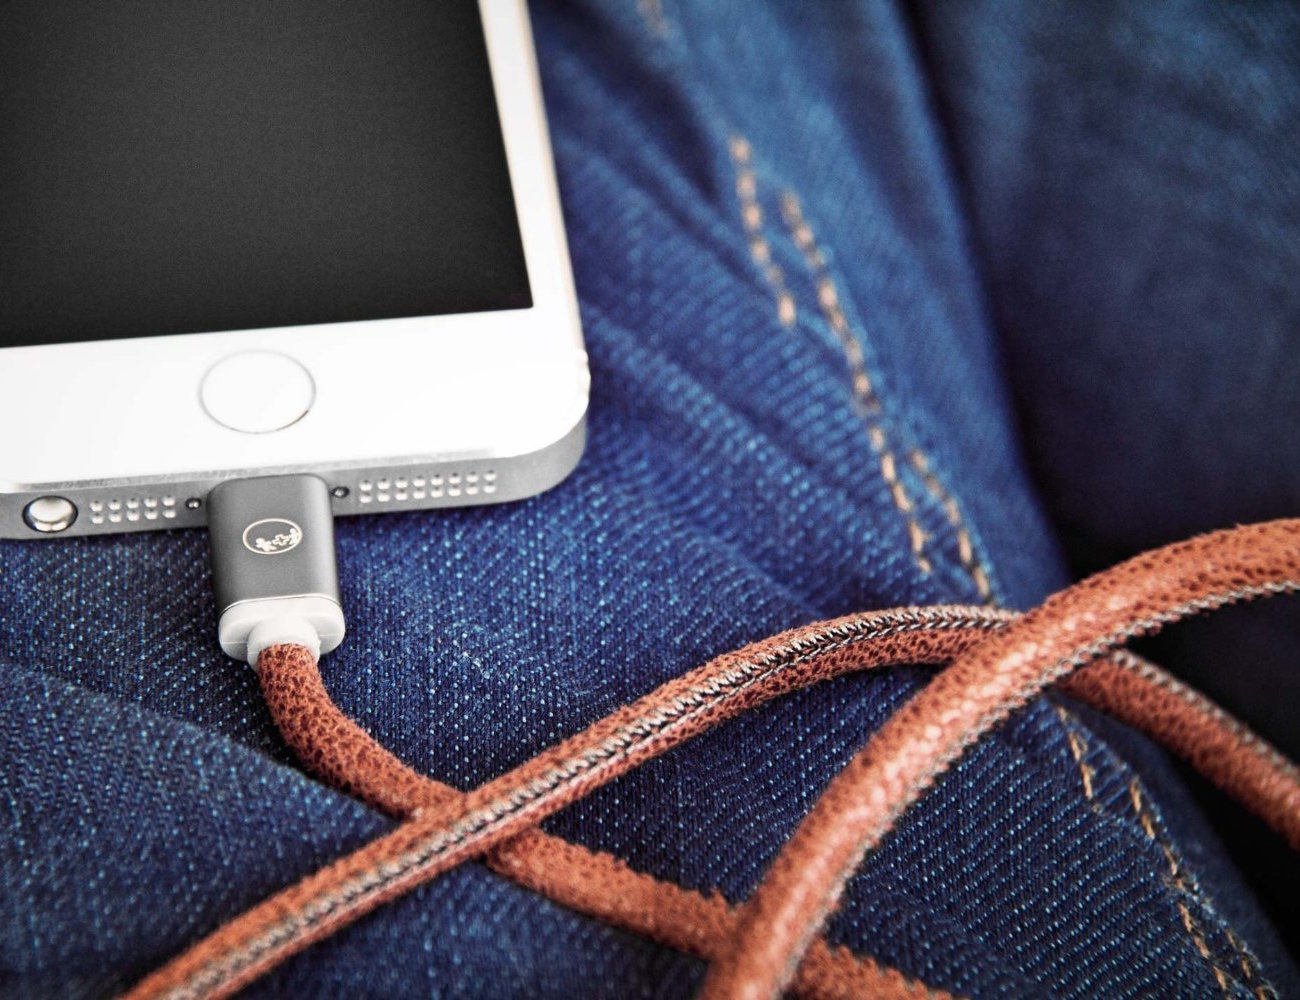 LifeStar Handcrafted Leather Lightning Cable by Plusus